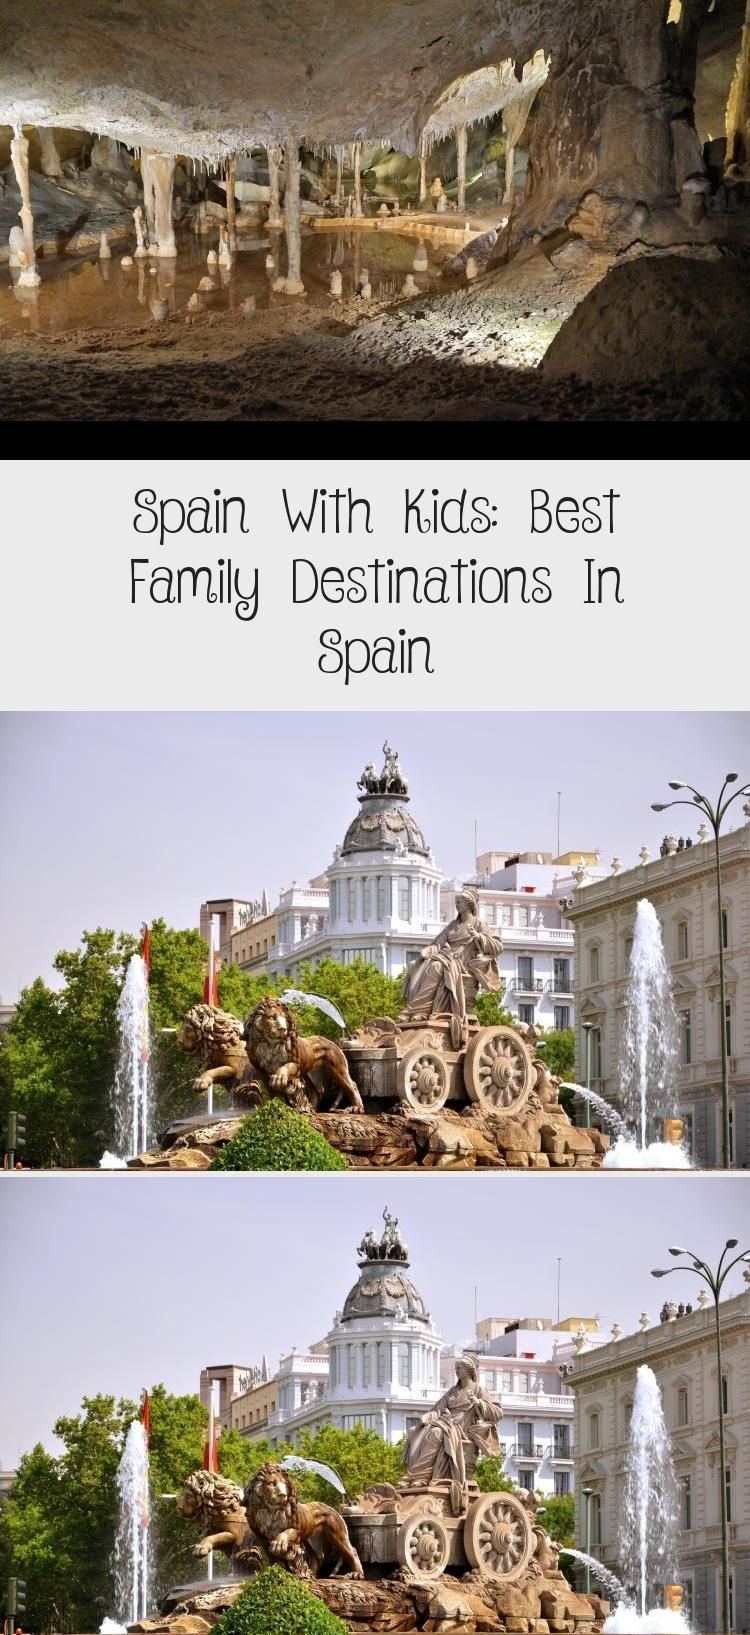 Spain With Kids: Best Family Destinations In Spain - Travel Related Stuff -  CLI... -  Spain With Kids: Best Family Destinations In Spain – Travel Related Stuff –  CLICK to read ever - #CLI #Destinations #Family #FamilyTravelbudget #FamilyTraveldestinations #FamilyTravelgoals #FamilyTravelillustration #FamilyTraveljapan #FamilyTravelkids #FamilyTravelphotography #FamilyTravelpictures #FamilyTravelquotes #FamilyTraveltips #kids #Related #Spain #Stuff #Travel